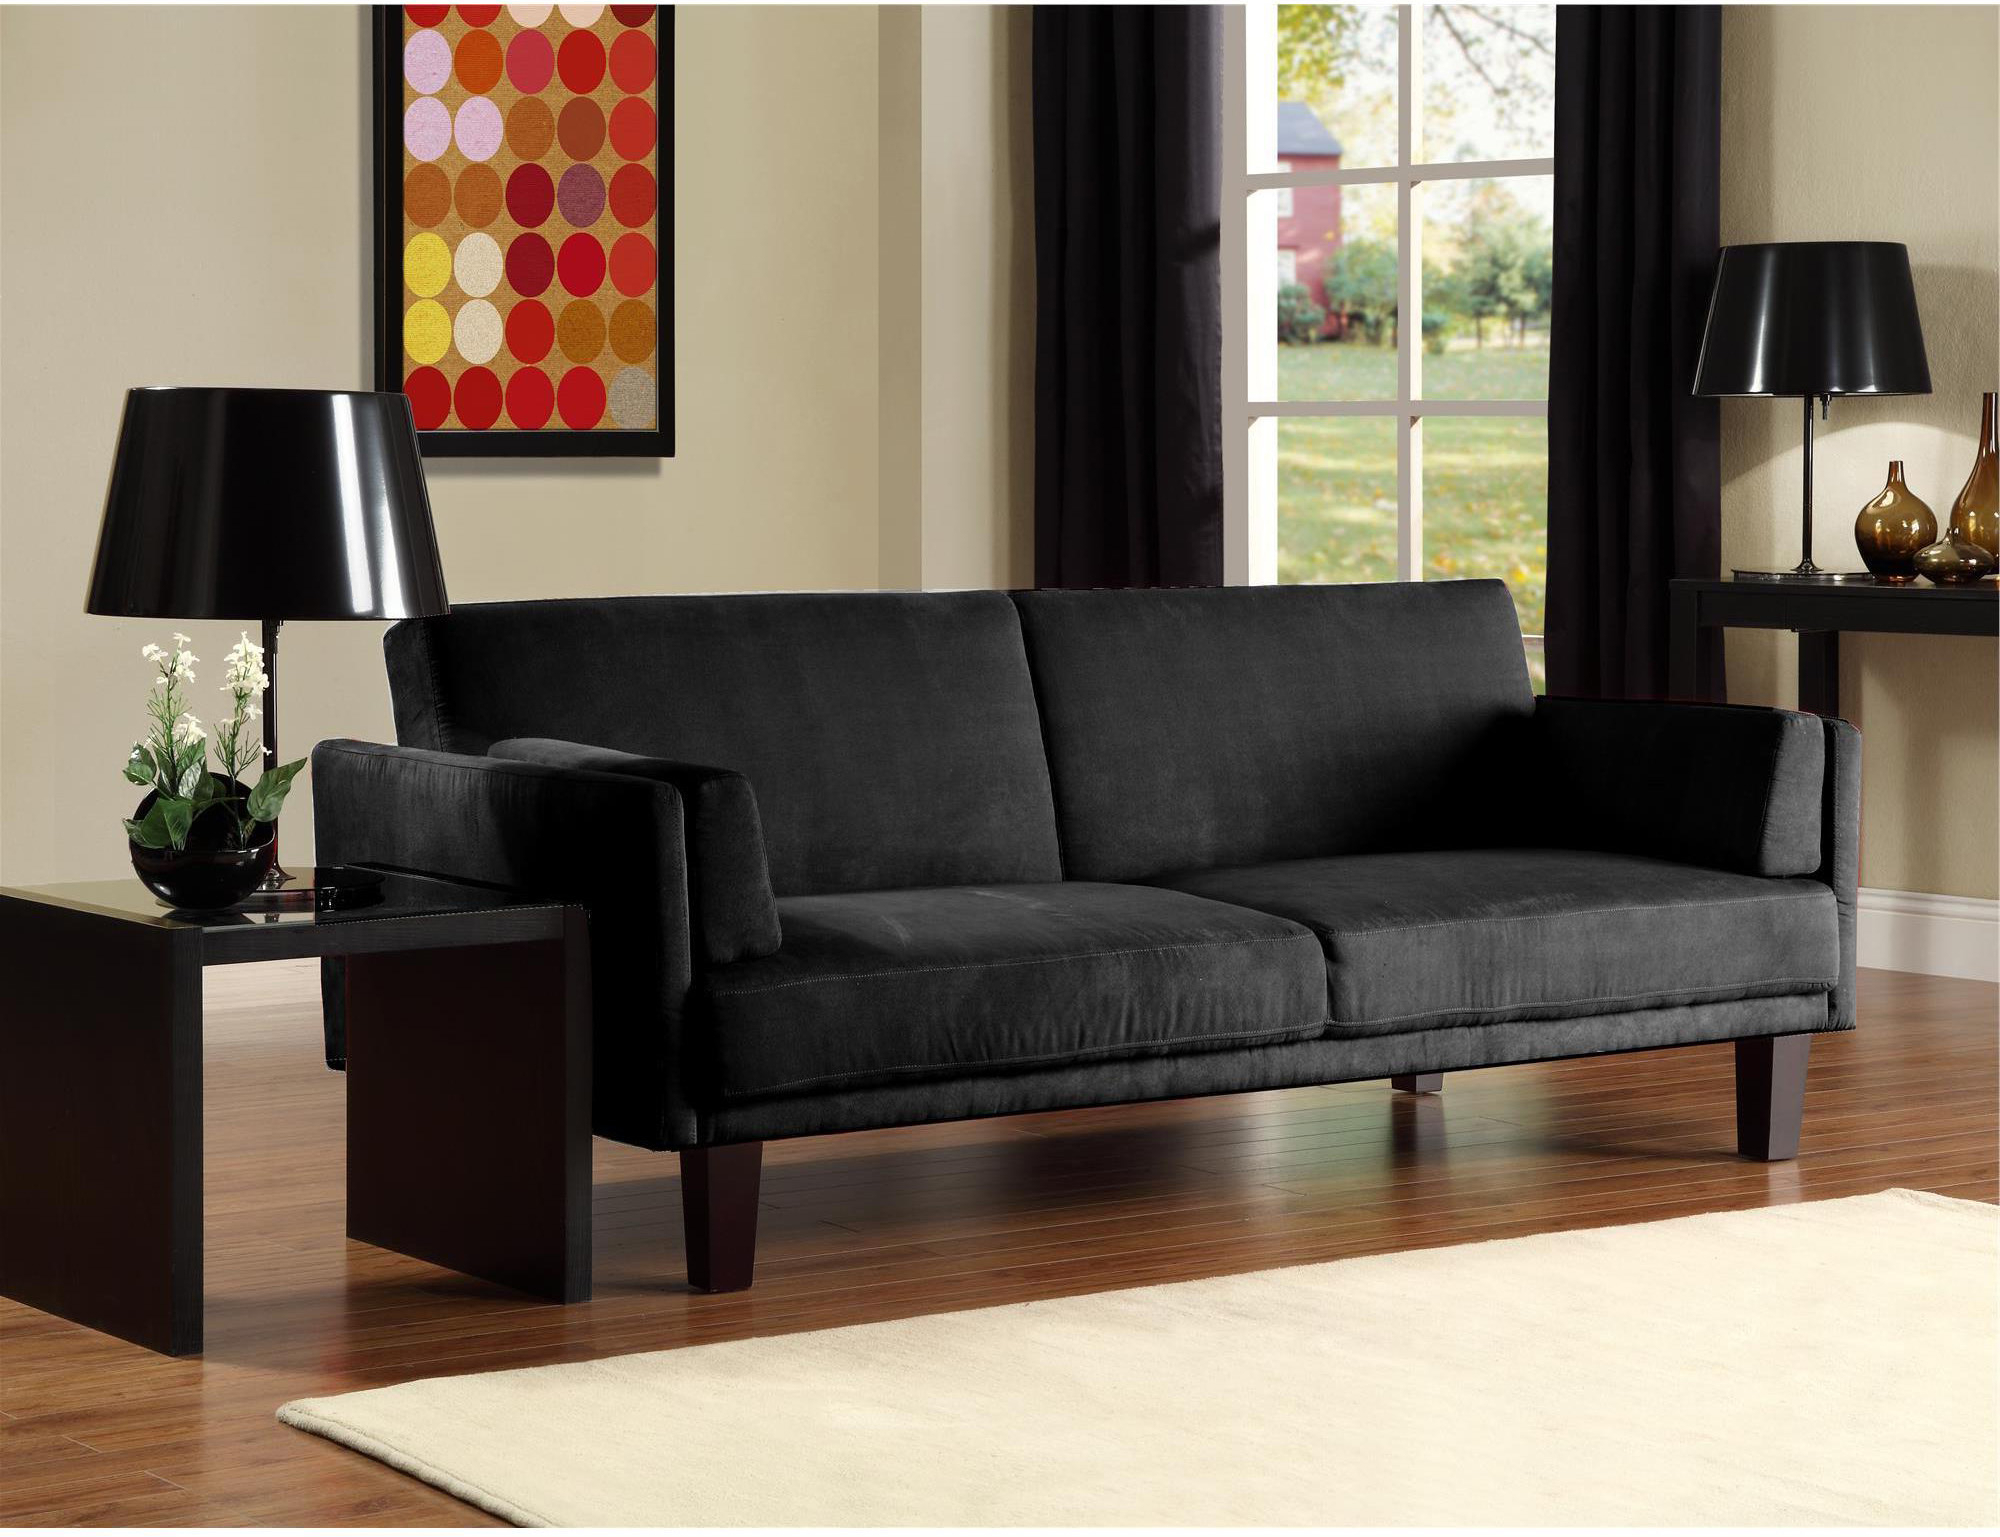 12 Affordable (and Chic) Small Sleeper Sofas For Tight Spaces Regarding Most Current Easton Small Space Sectional Futon Sofas (View 15 of 20)